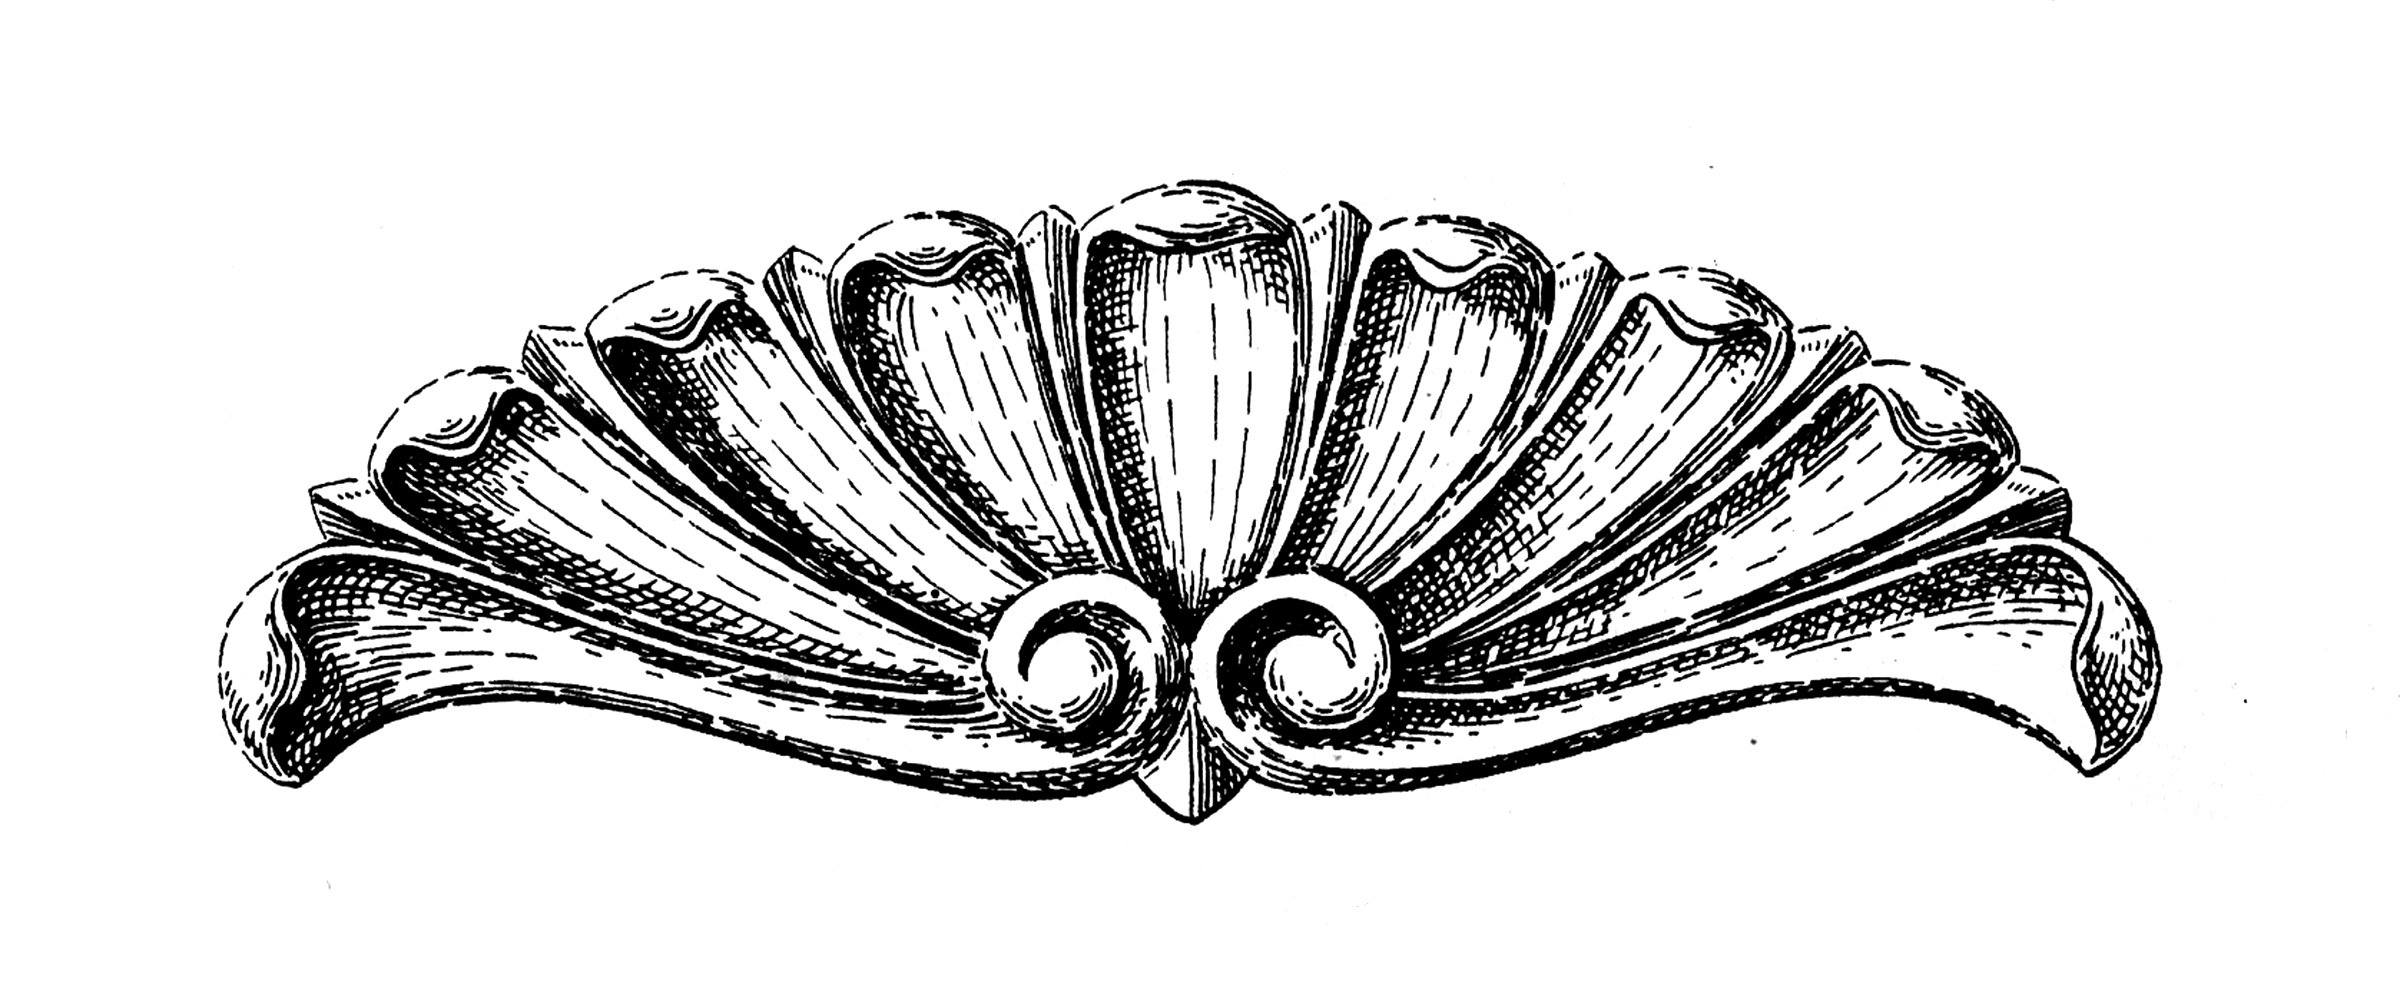 Old Black and White Shell Wood Carving Graphic